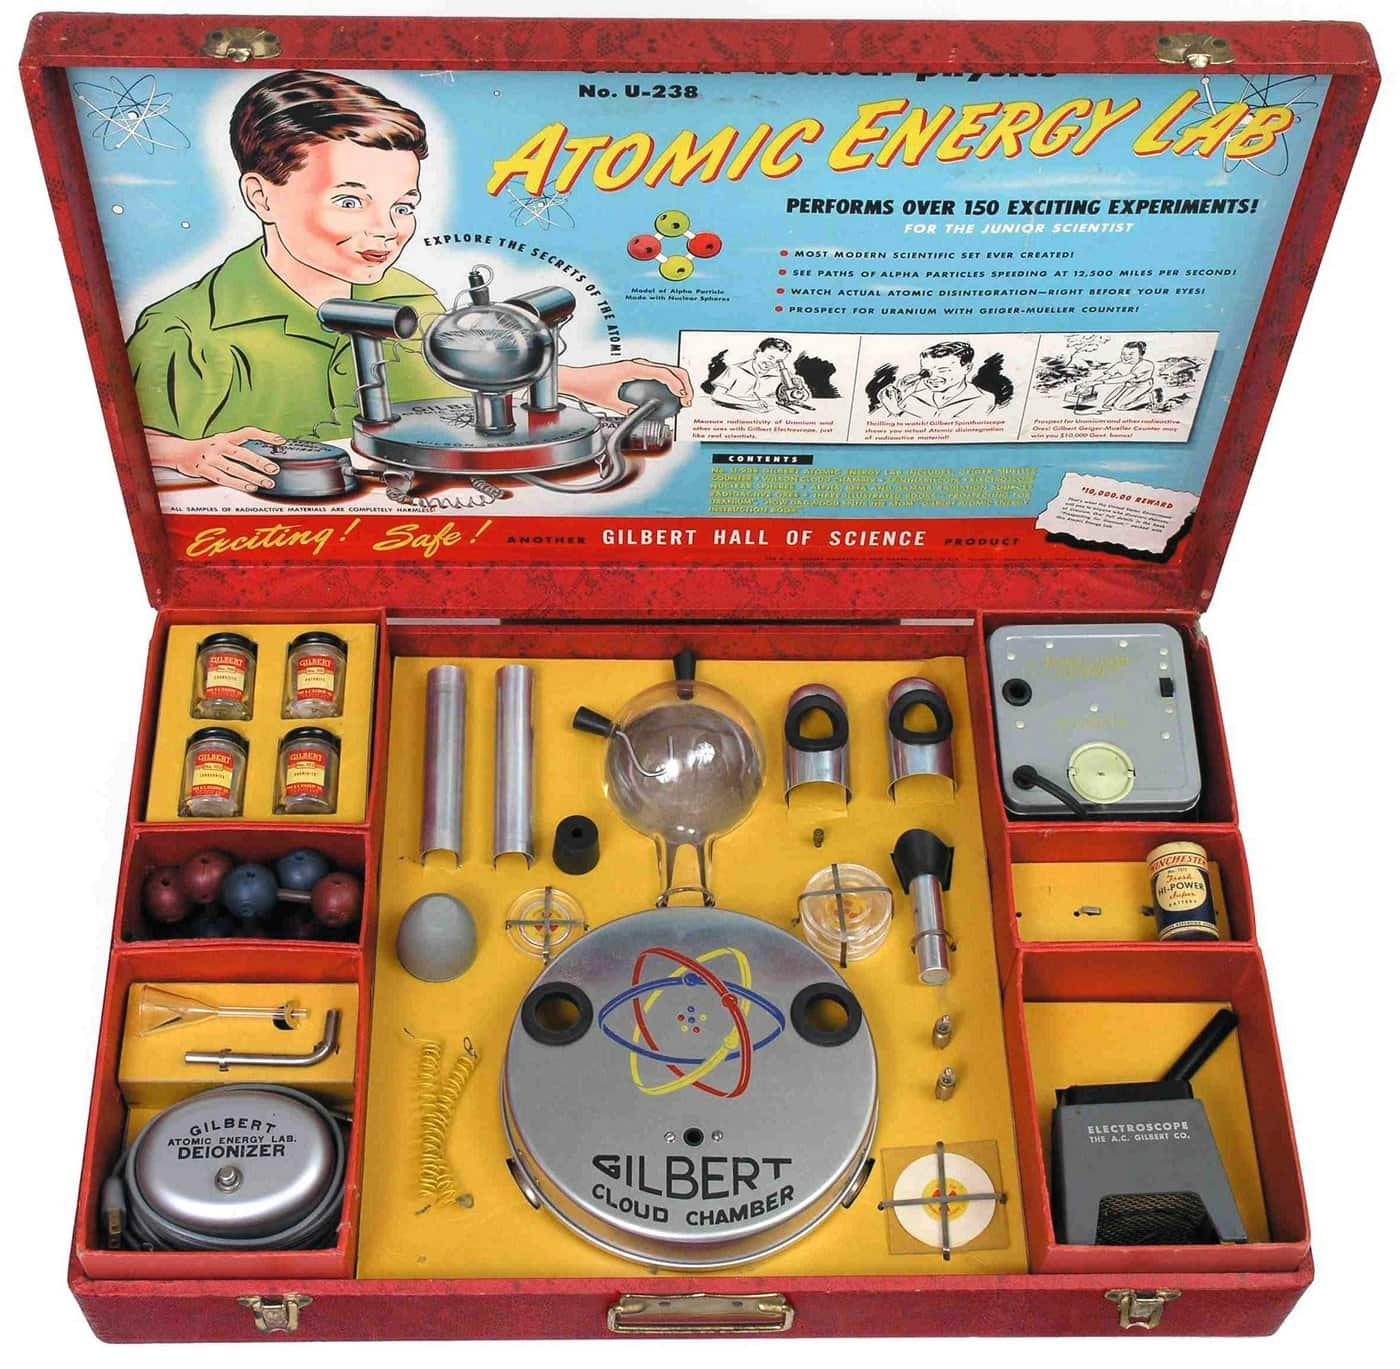 Vintage Atomic Energy Lab science toy from 1951